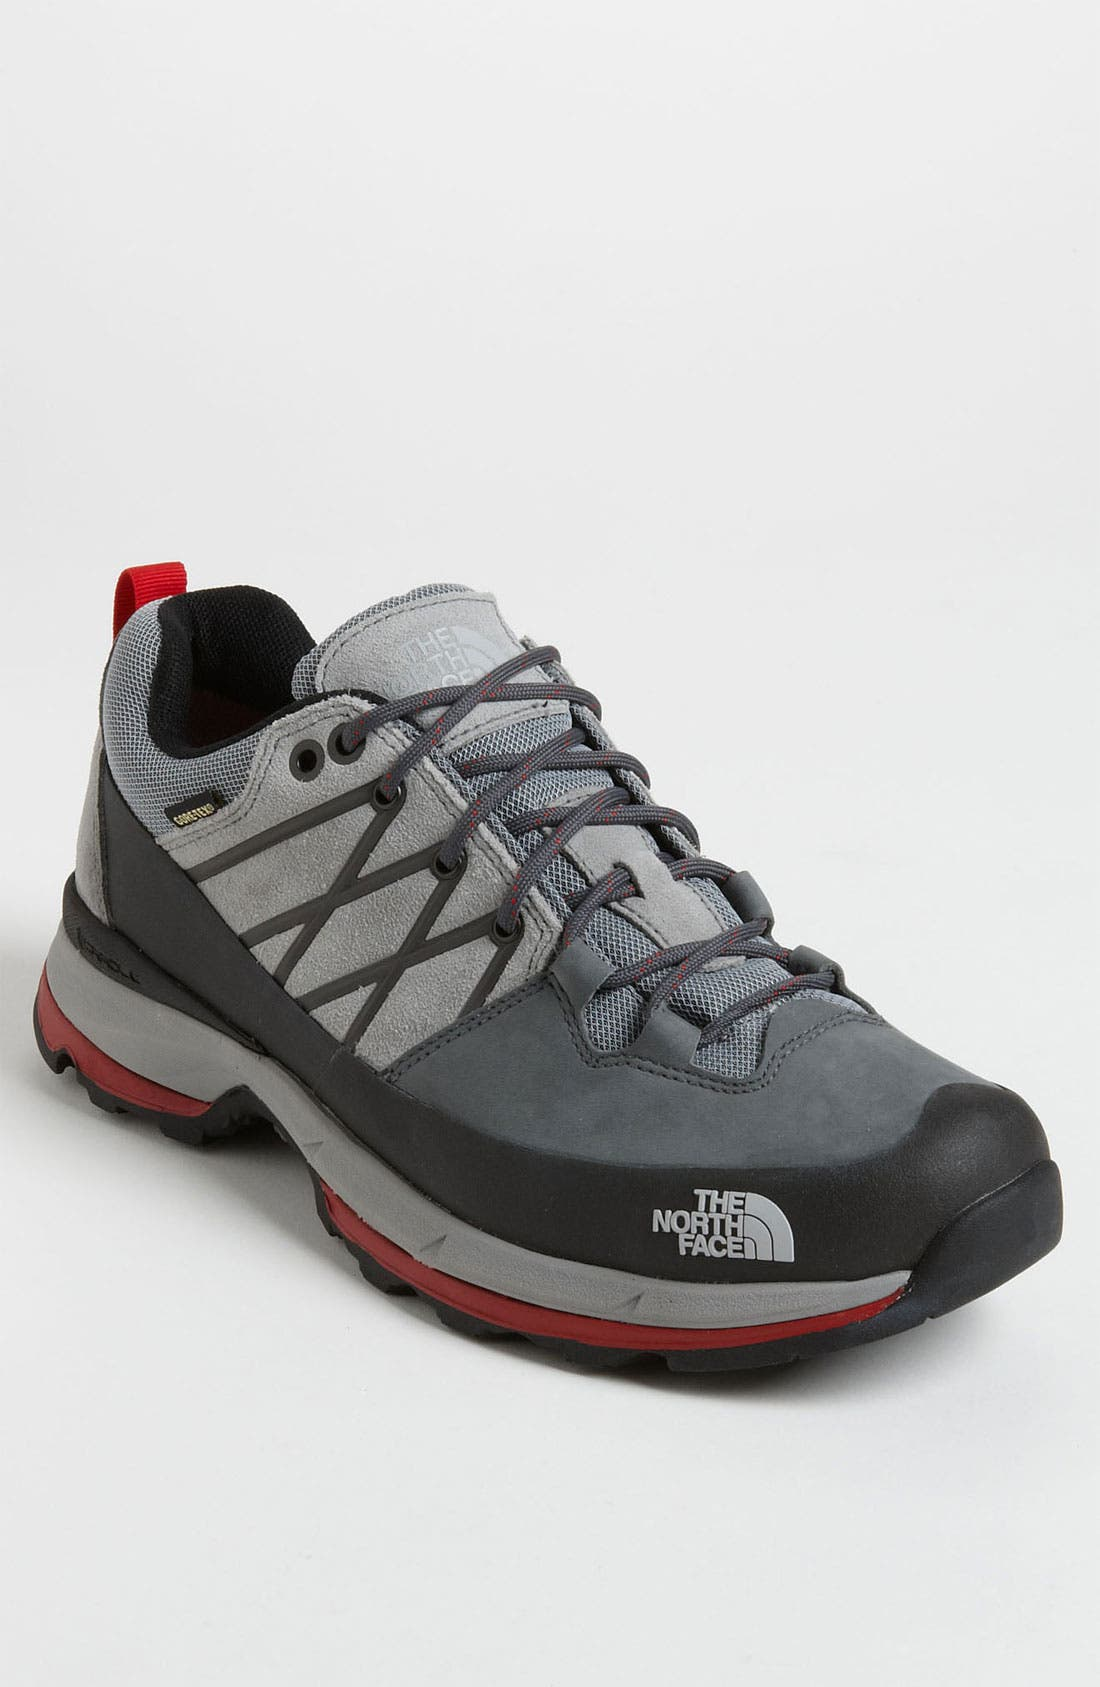 Main Image - The North Face 'Wreck GTX' Hiking Shoe